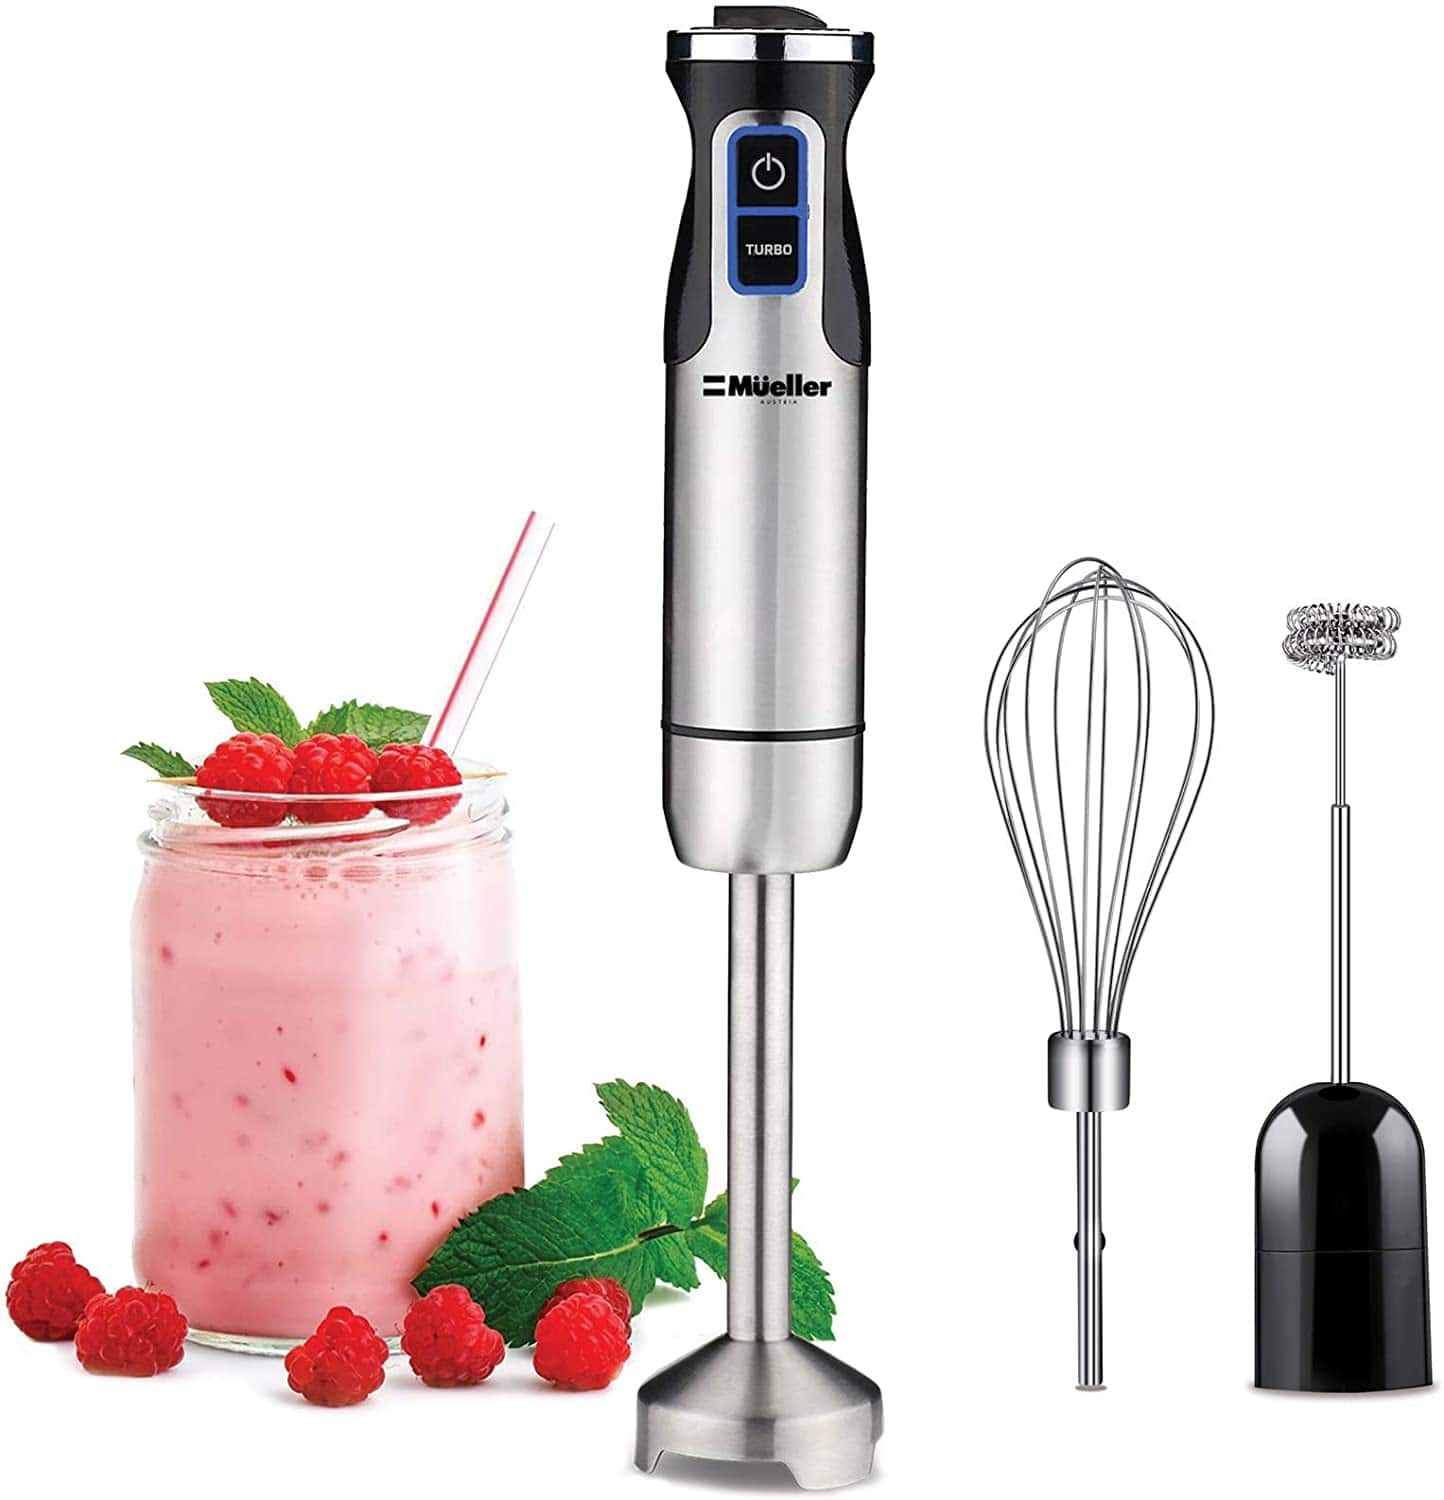 Amazon.com: Mueller Austria Ultra-Stick 500 Watt 9-Speed Immersion Multi-Purpose Hand Blender Heavy Duty Copper Motor Brushed 304 Stainless Steel With Whisk, Milk Frother $29.97